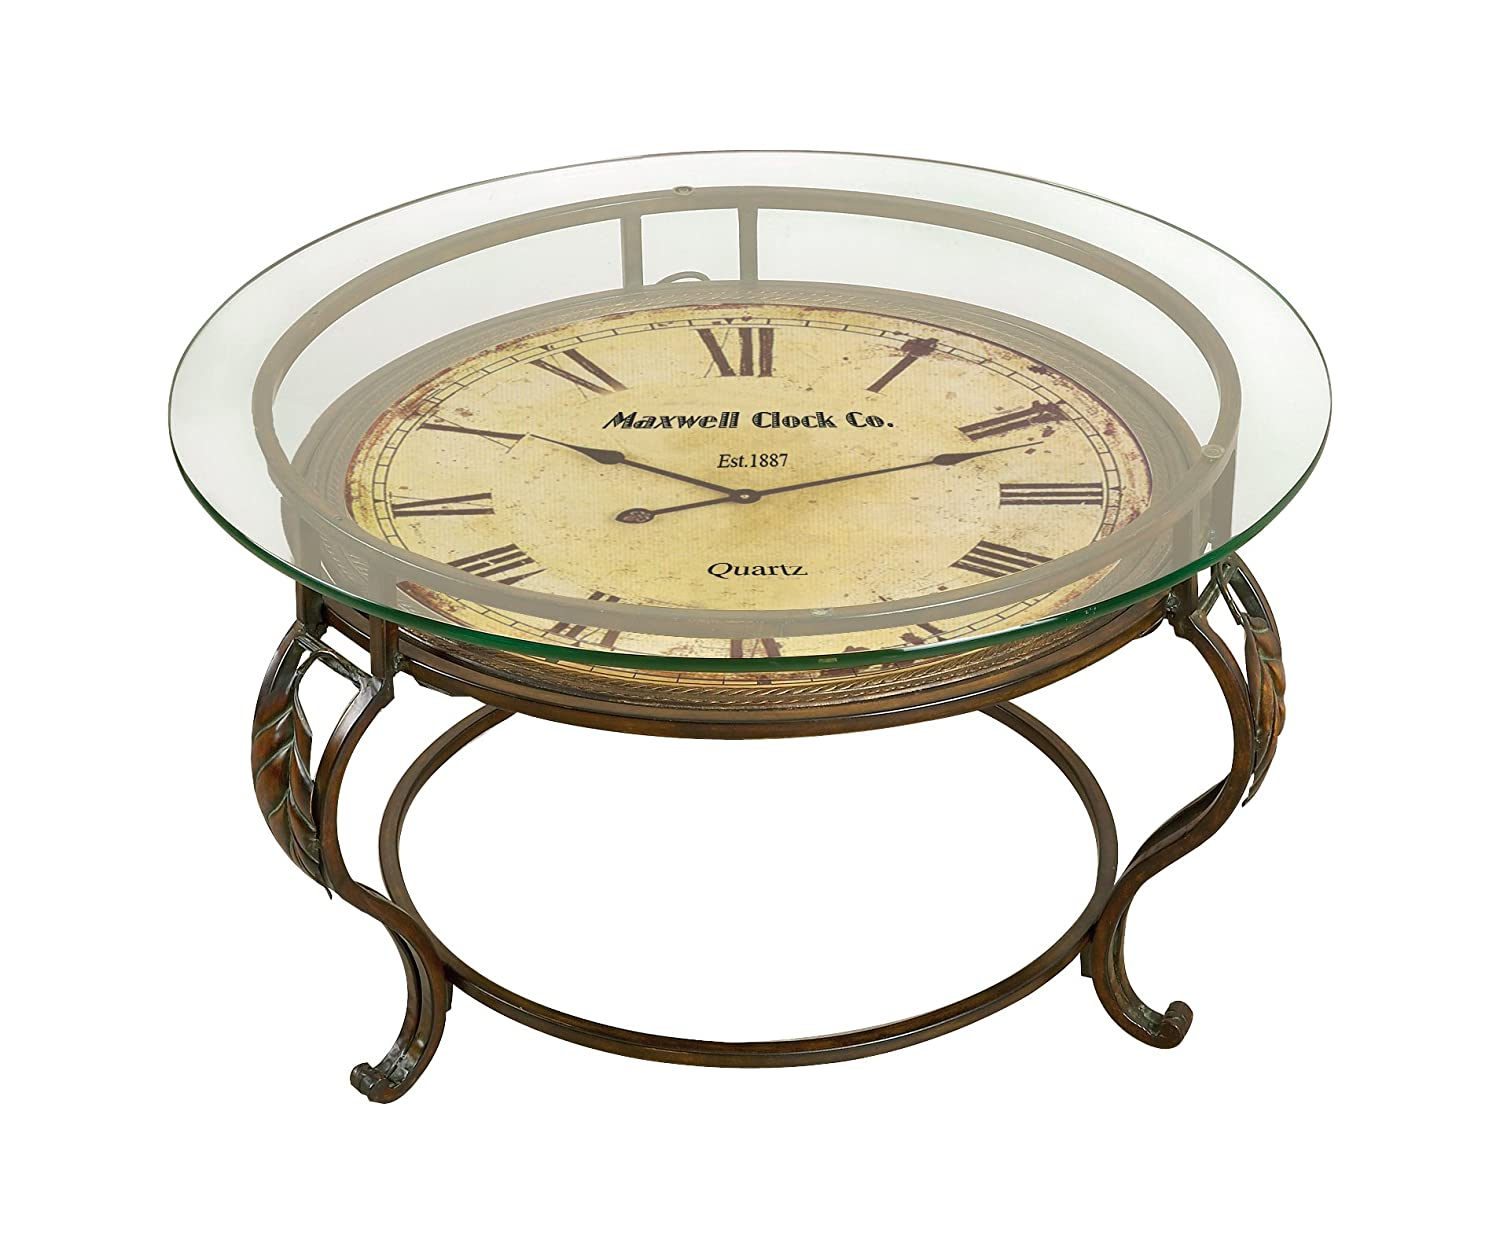 Etonnant Amazon.com: Aspire Cocktail Table With Clock, Reddish/Brown: Home U0026 Kitchen